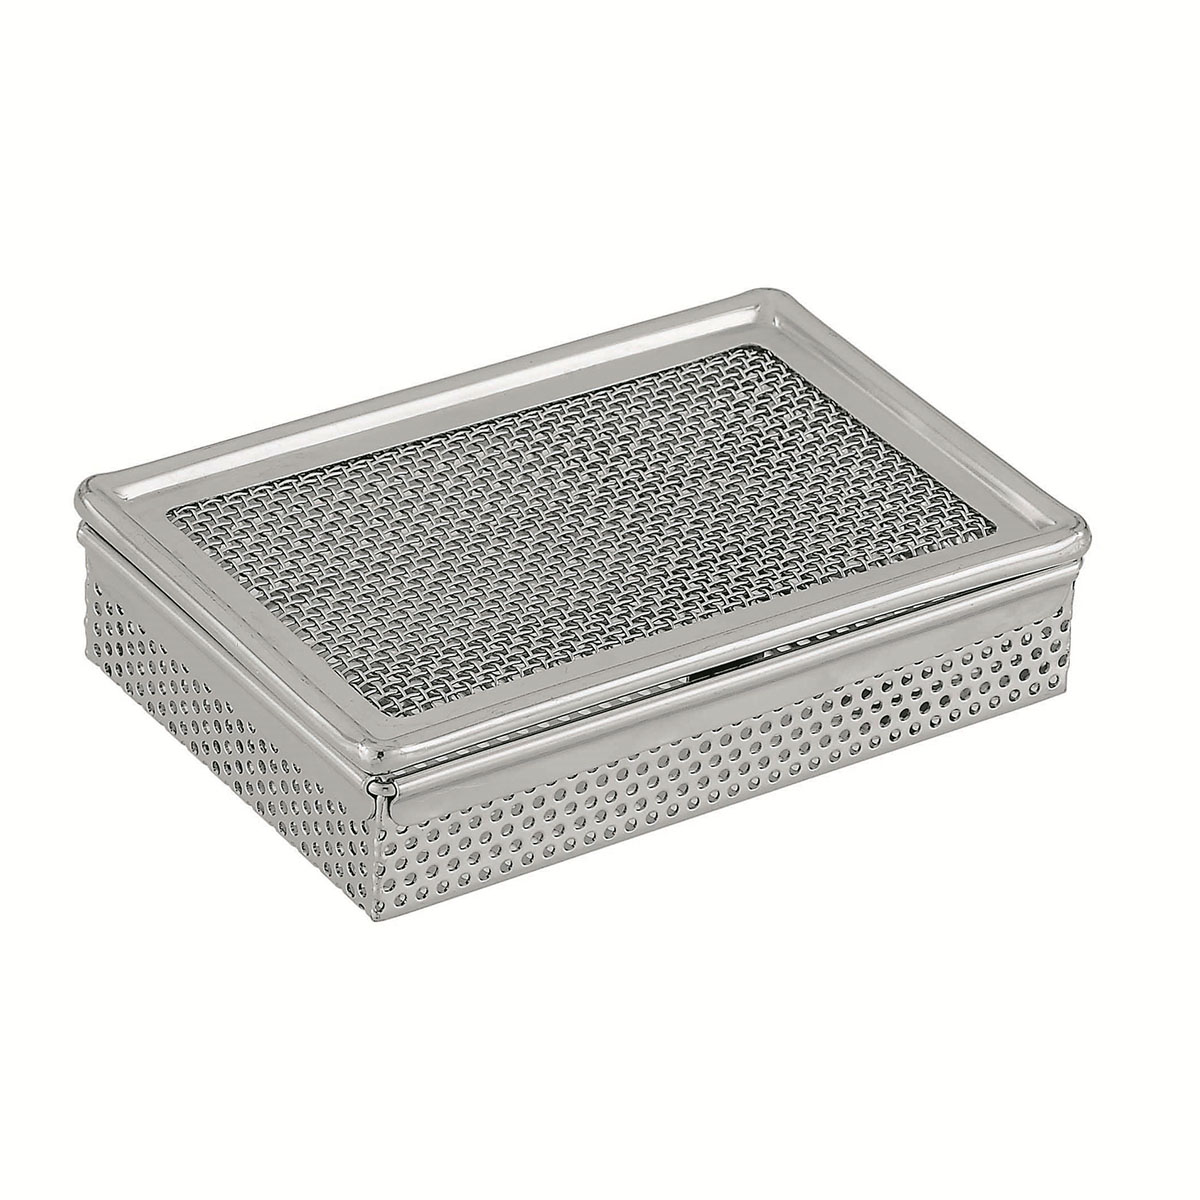 Trinket Box with Perforated Sides and Wire Mesh Lid Image